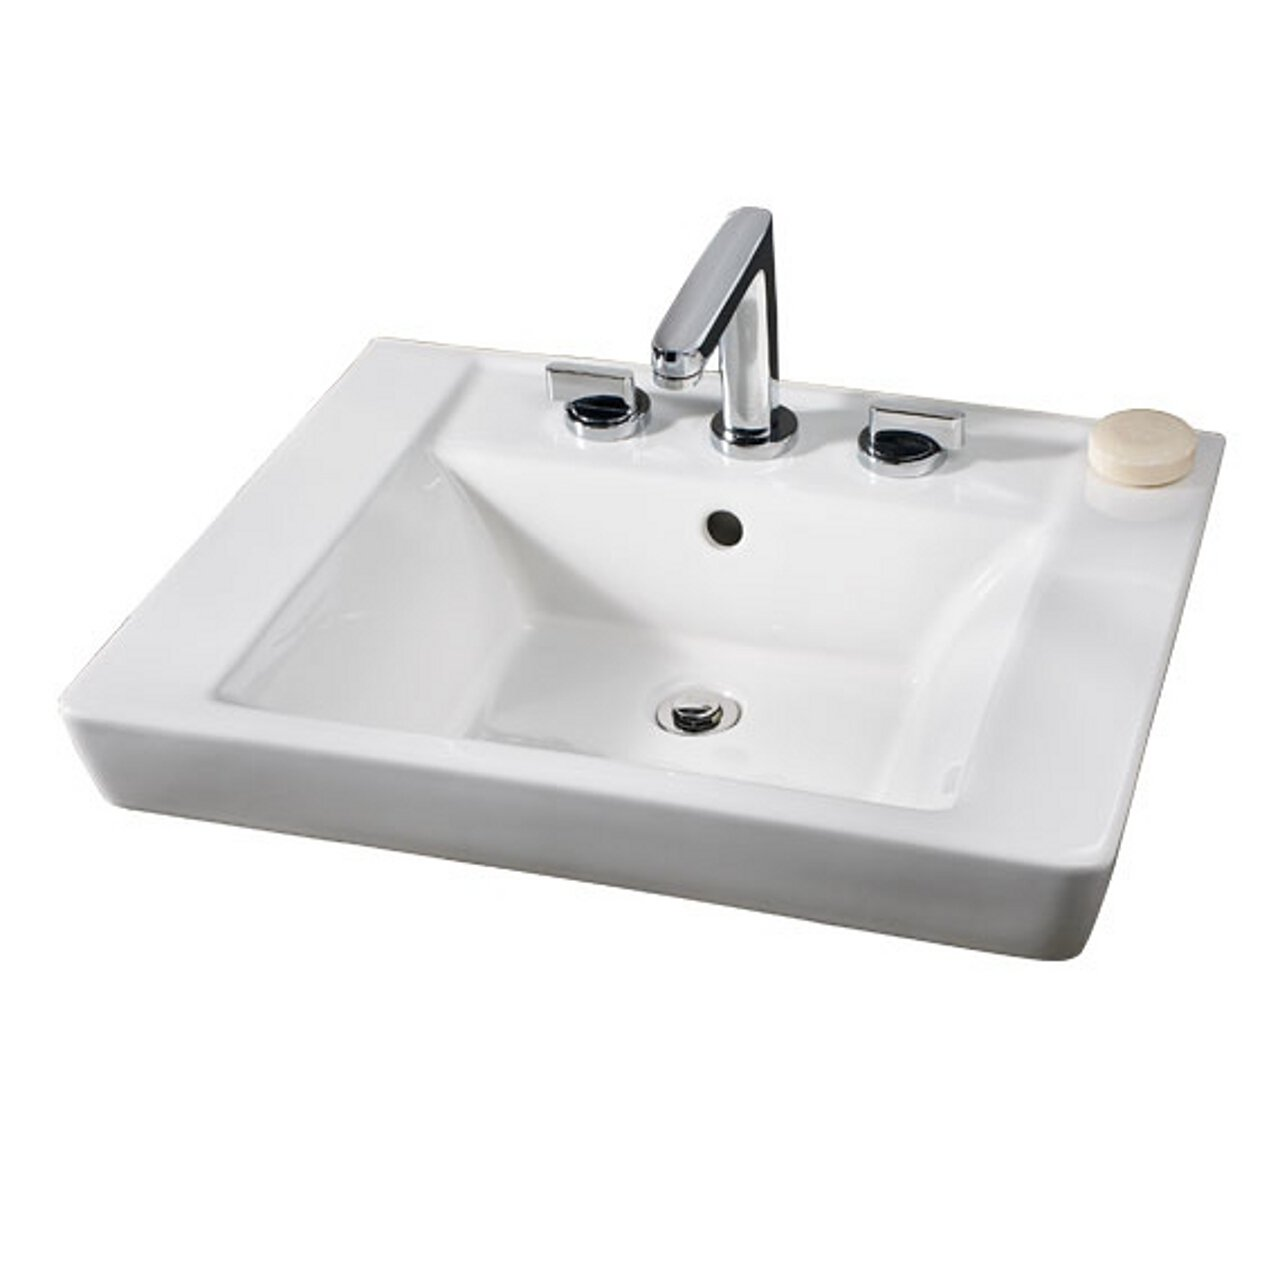 American Standard 0641.001.020 Boulevard Single Hole Pedestal Sink Basin,  White     Amazon.com